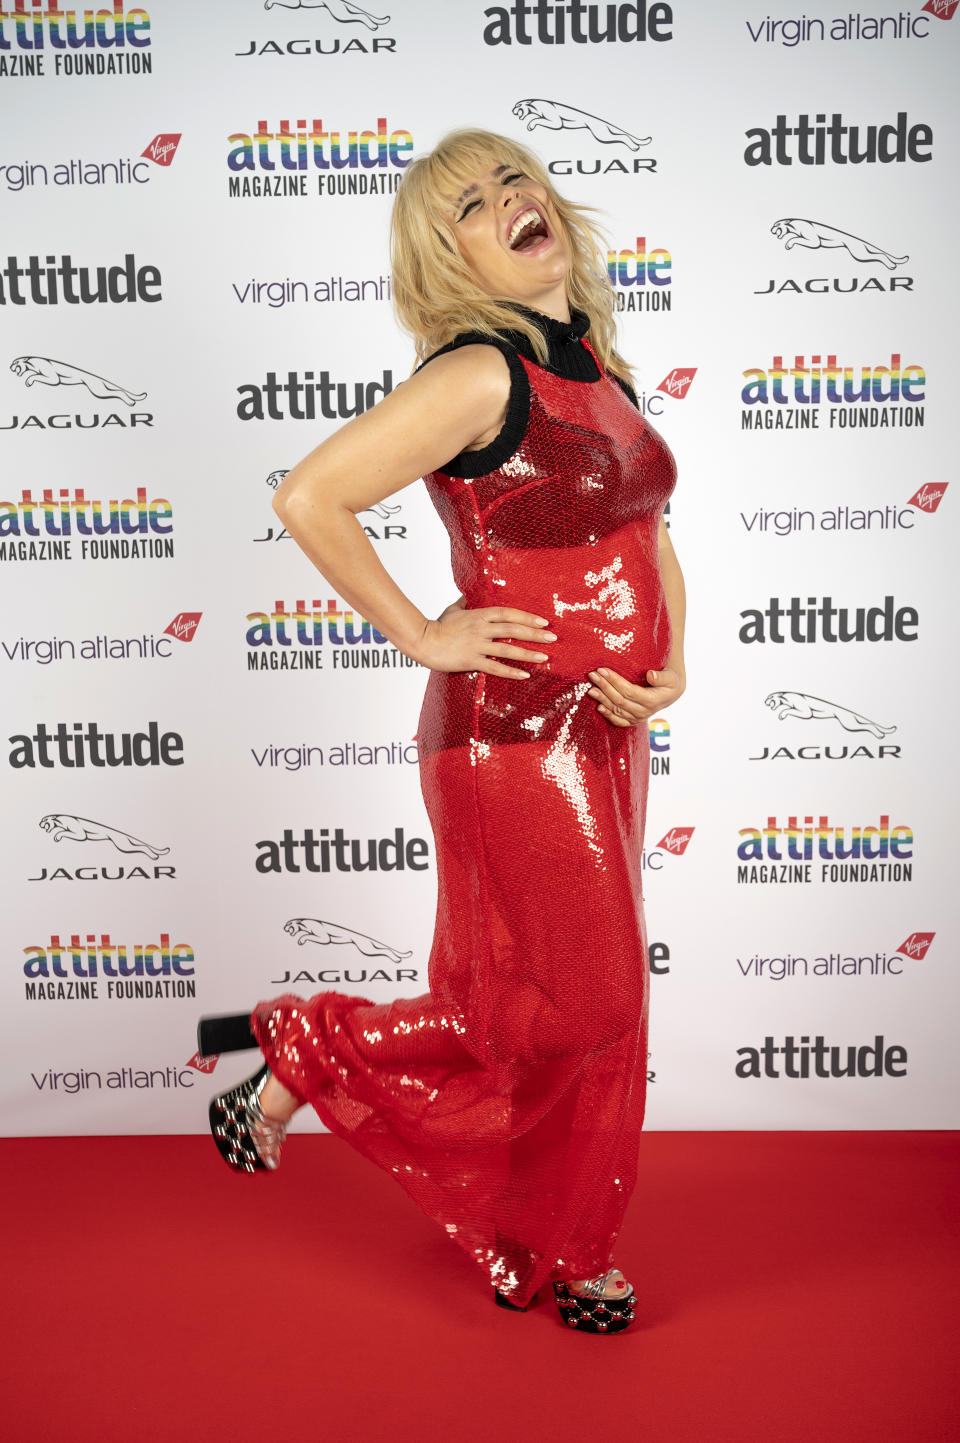 UNSPECIFIED: In this image released on December 1, 2020, Singer Paloma Faith poses on the red carpet during the Virgin Atlantic Attitude Awards Powered By Jaguar broadcast on  December 01, 2020 in London, England. (Photo by Attitude Magazine/Attitude Magazine via Getty Images)